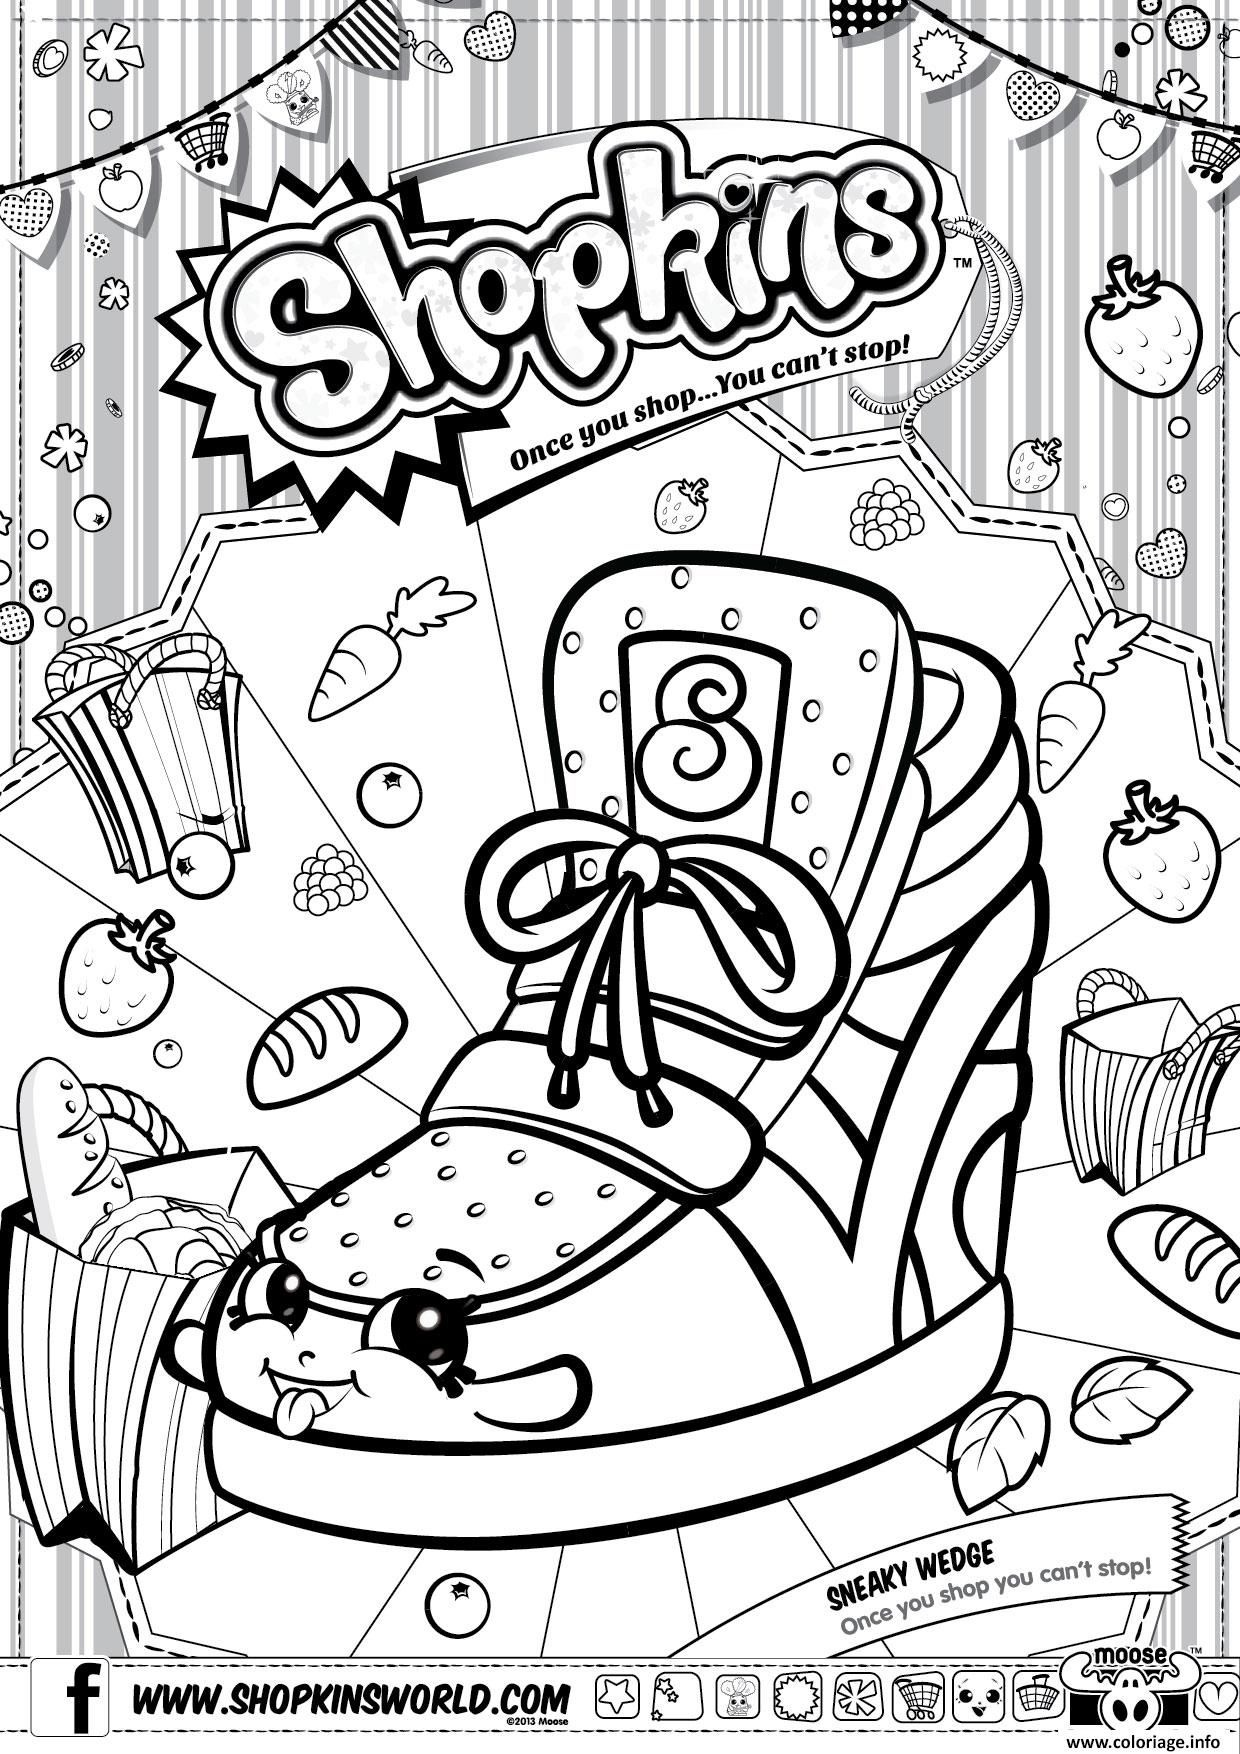 1240x1754 Cheeky Chocolate Shopkins Coloring Pages To Print Coloring